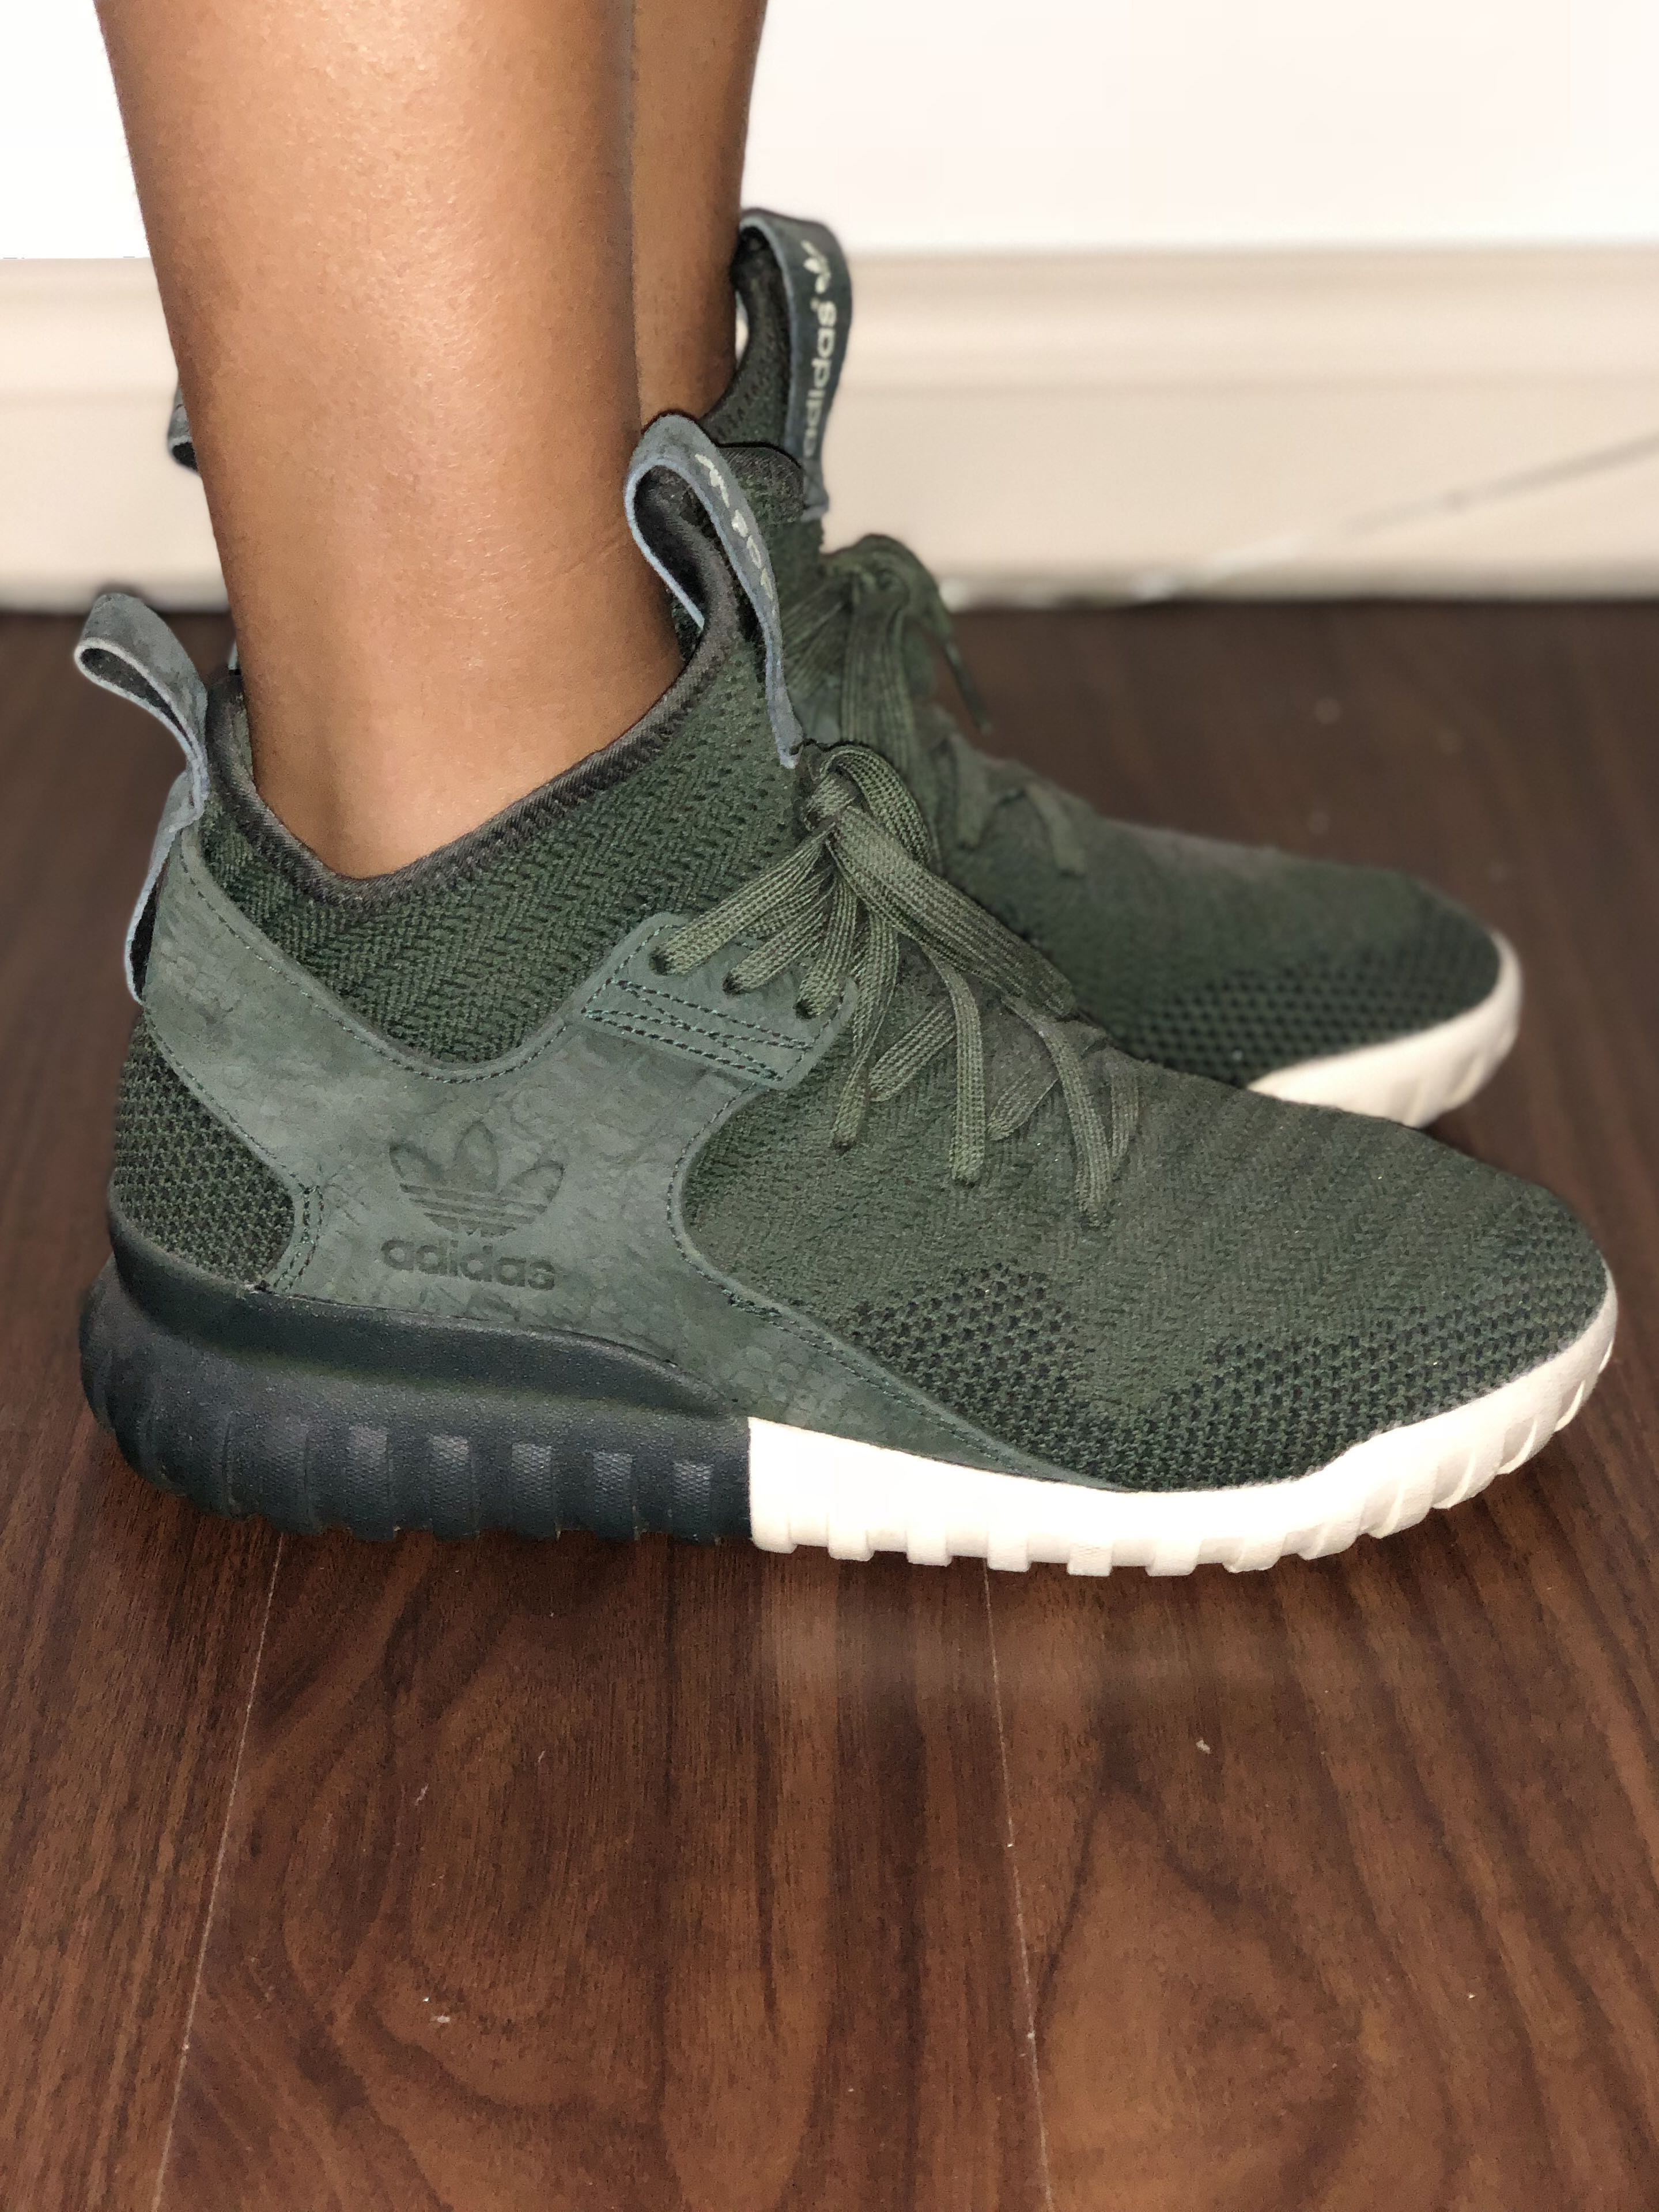 promo code a36bc 37b9c NEW Adidas Tubular X, Women's Fashion, Shoes on Carousell